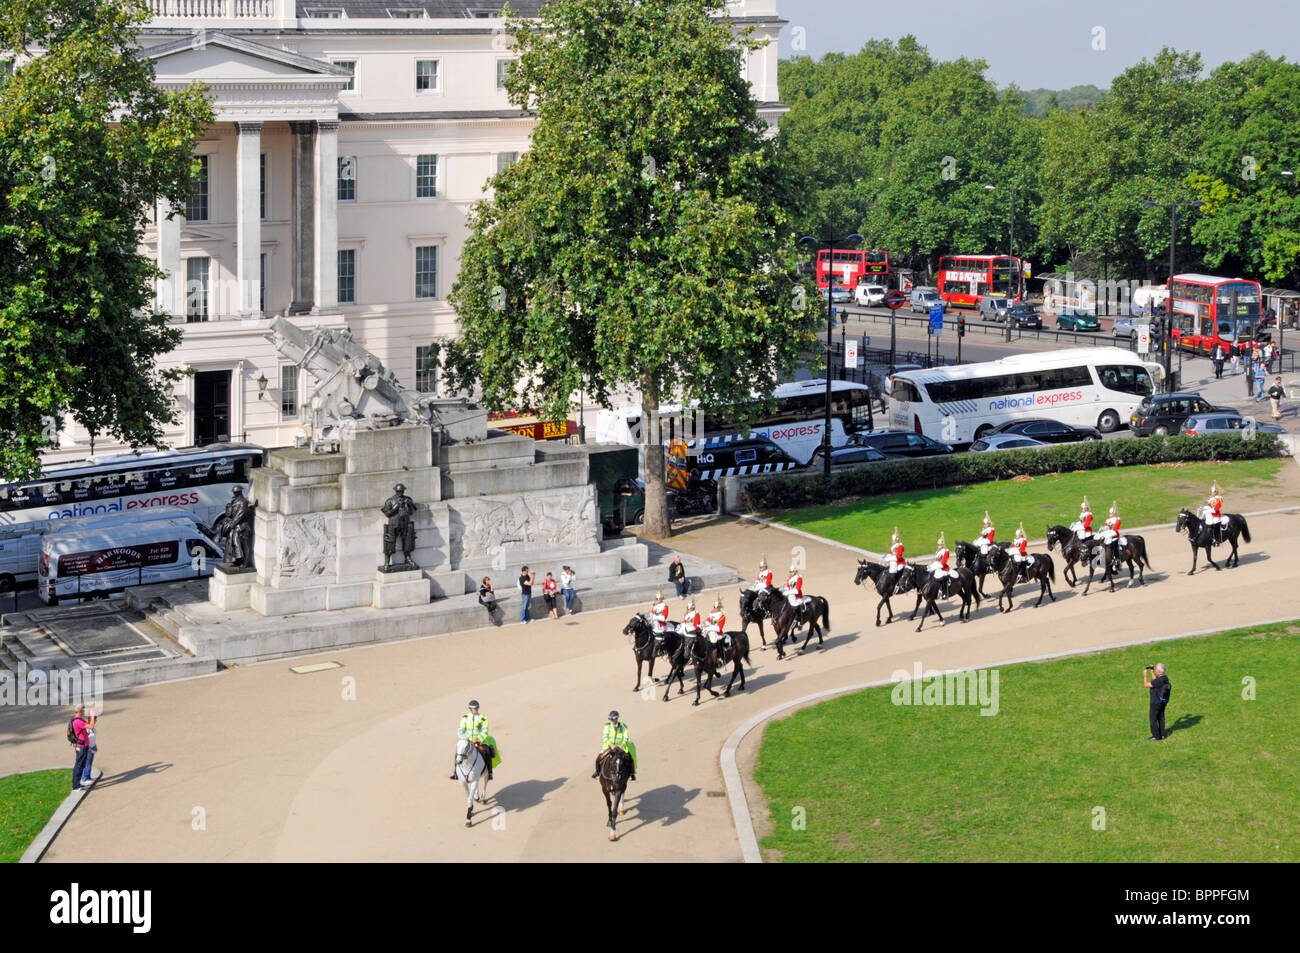 Hyde Park Corner Household Cavalry passing the Royal Artillery Memorial and the Lanesborough Hotel - Stock Image